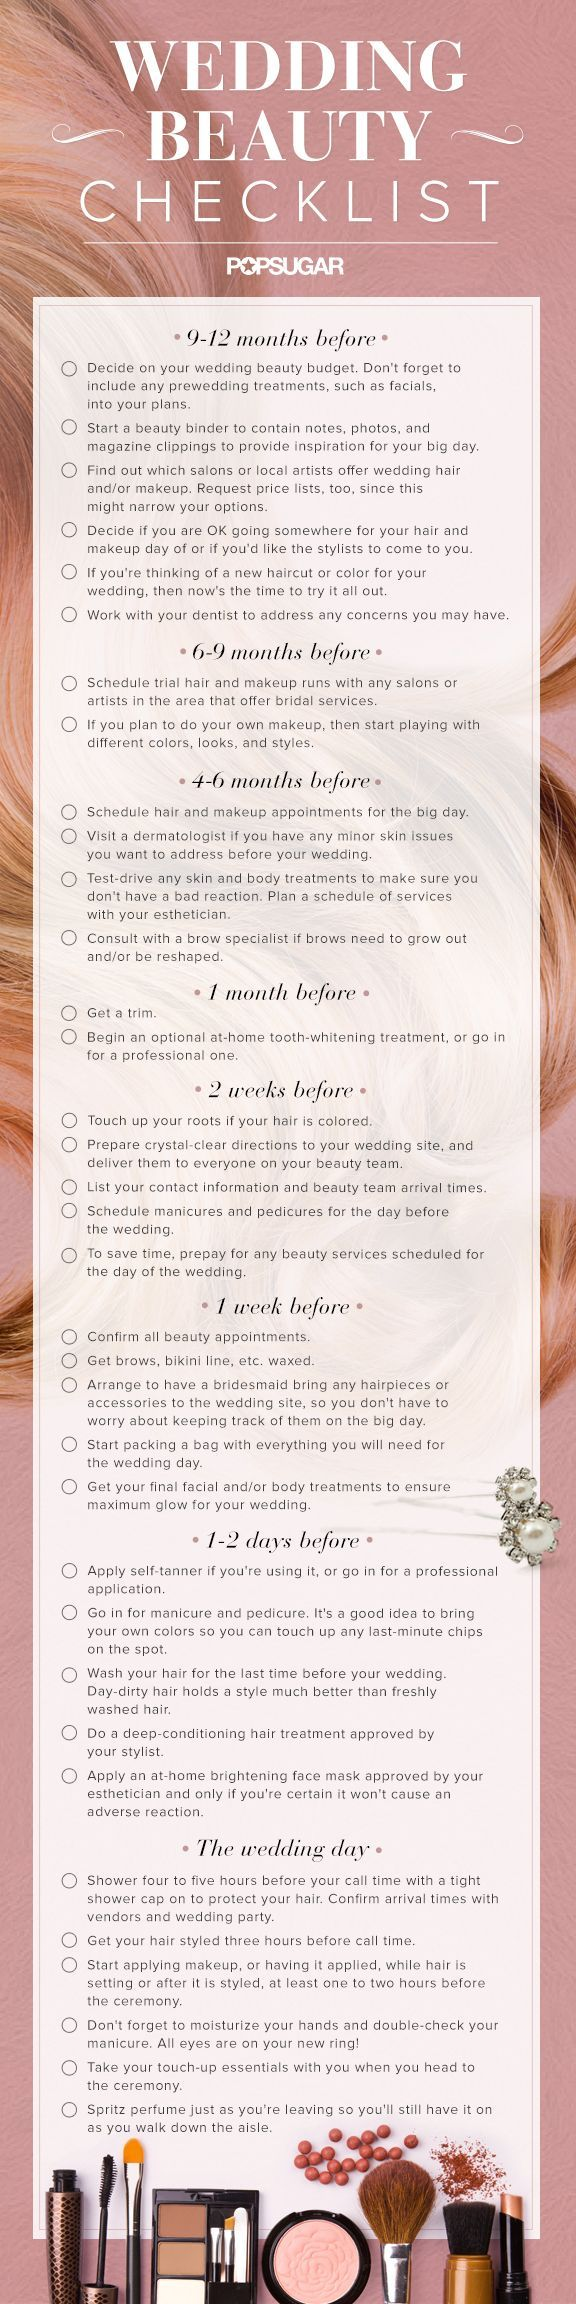 I love this awesome wedding beauty checklist for brides! Perfect for bride's family and friends too!